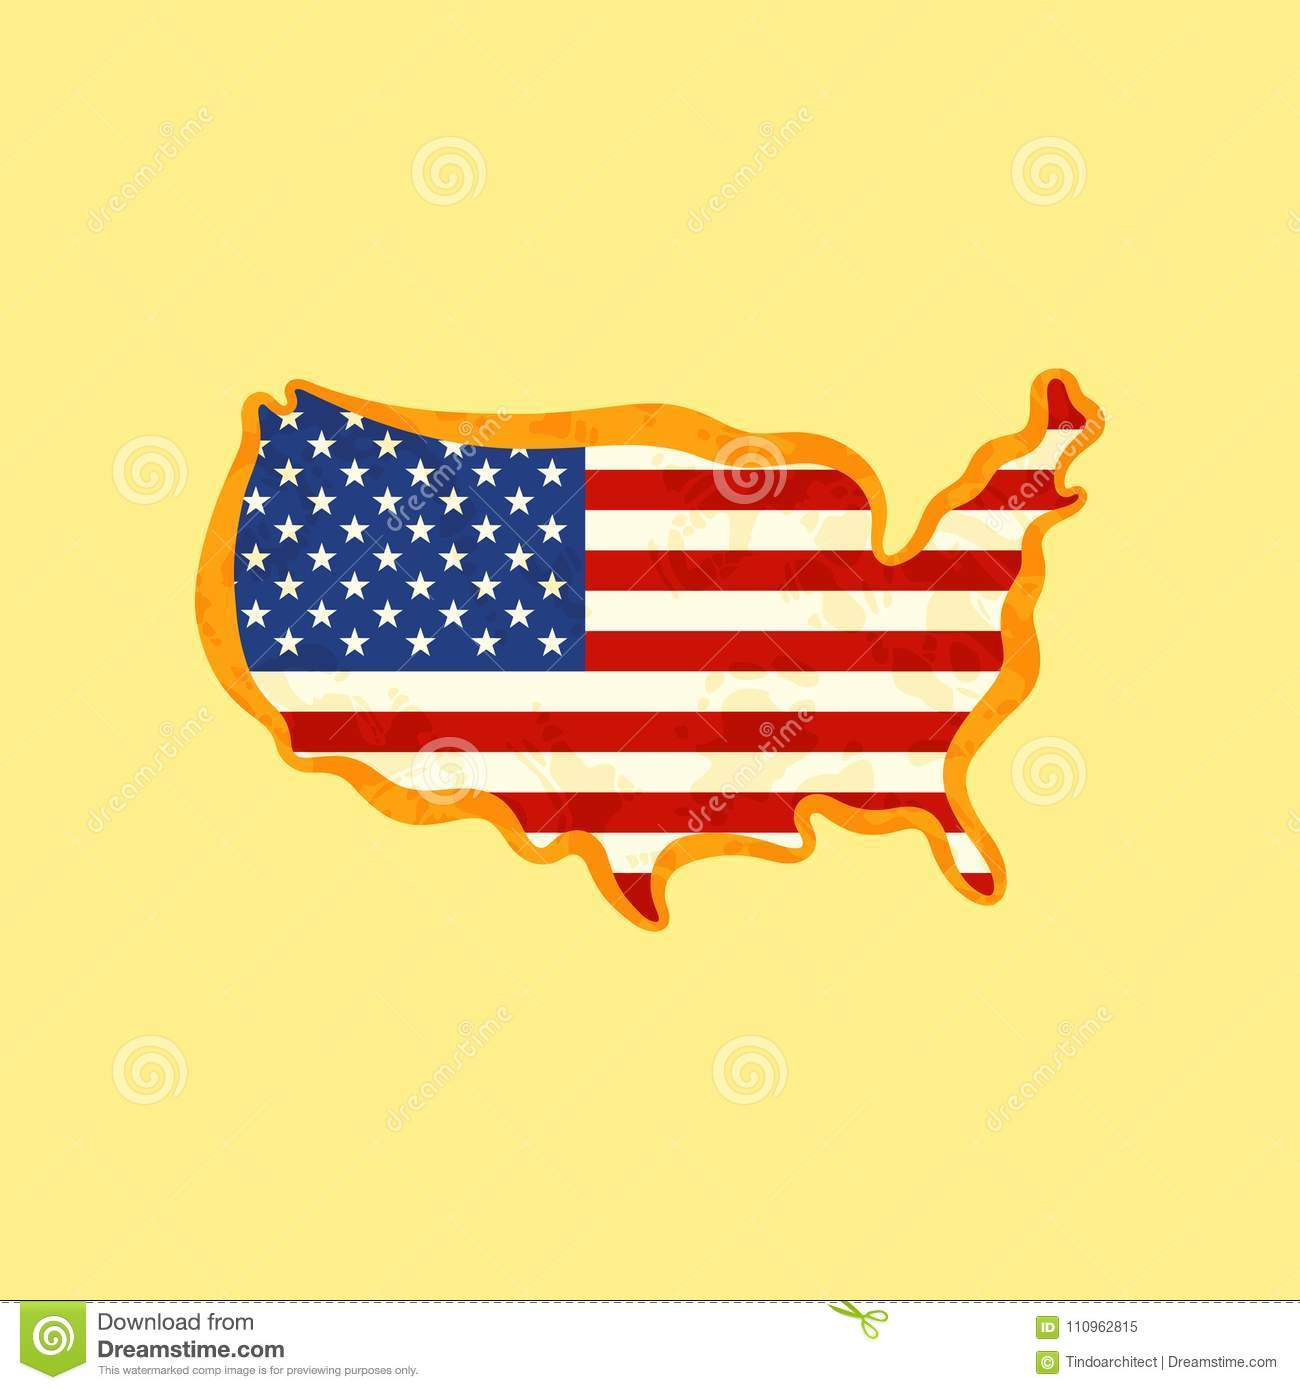 United States - Map Colored With US Flag Stock Vector - Illustration ...